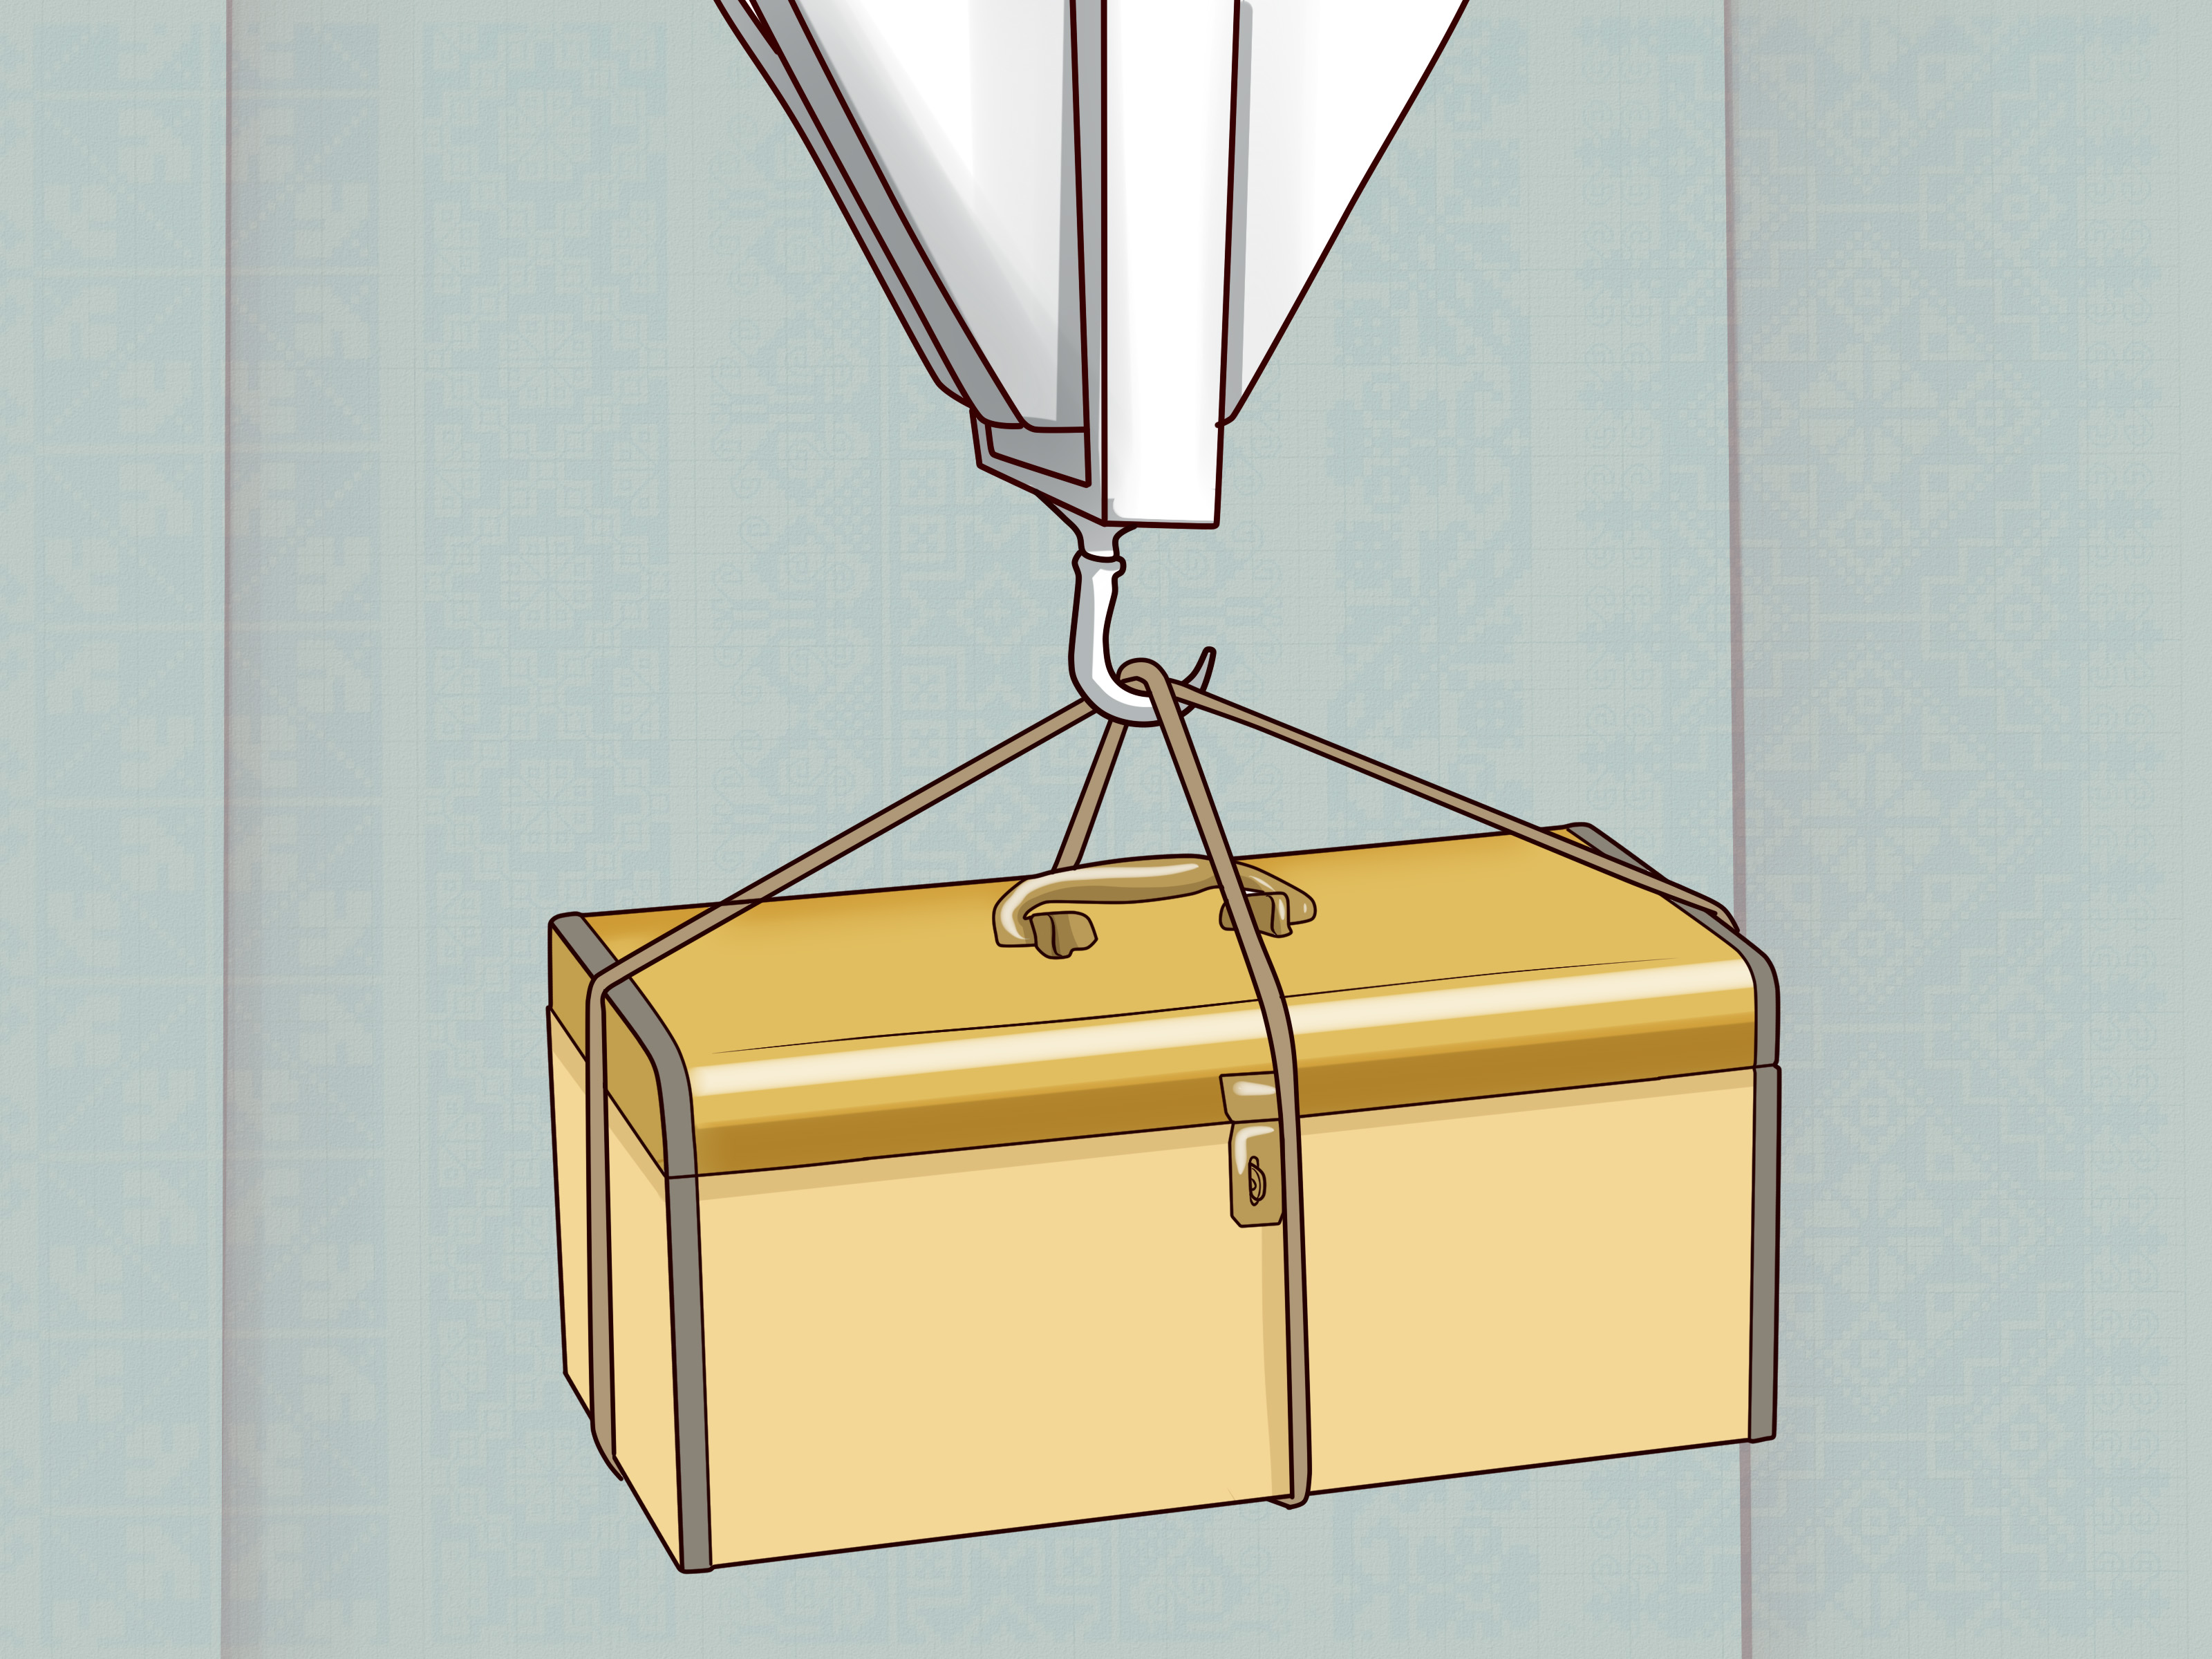 3 Ways To Build A Pulley